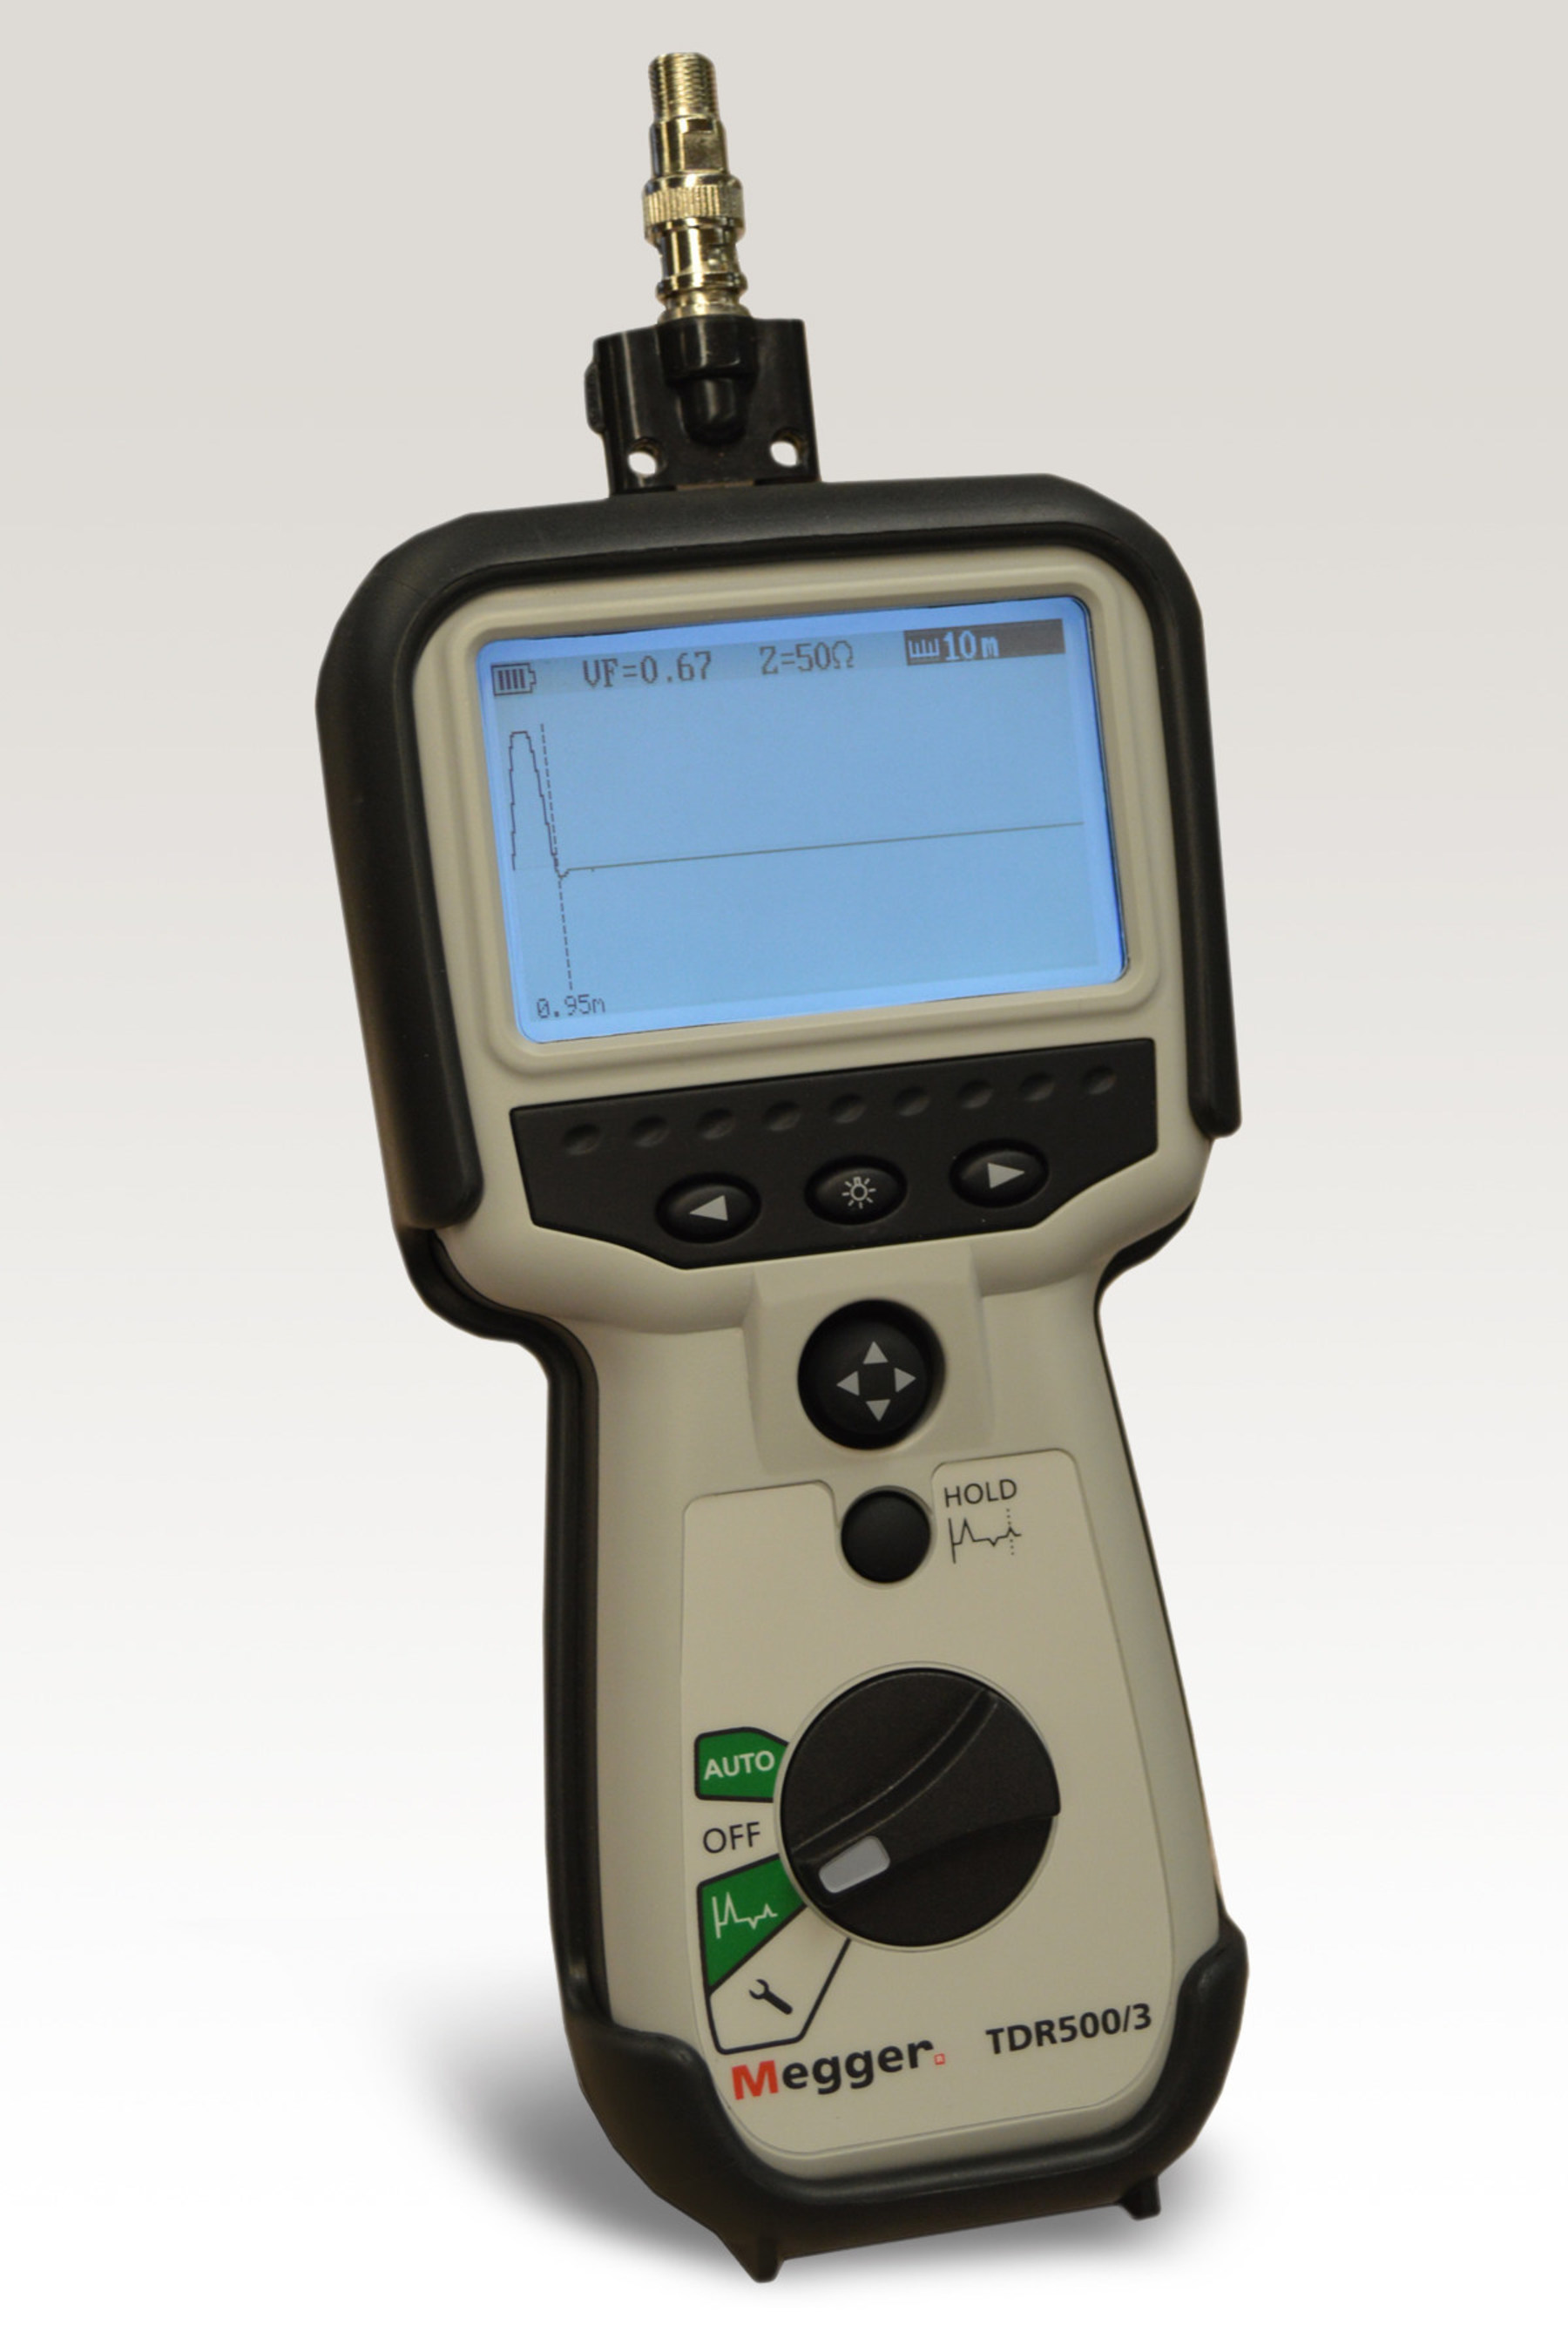 Handheld TDR from Megger Used in the CATV Industry